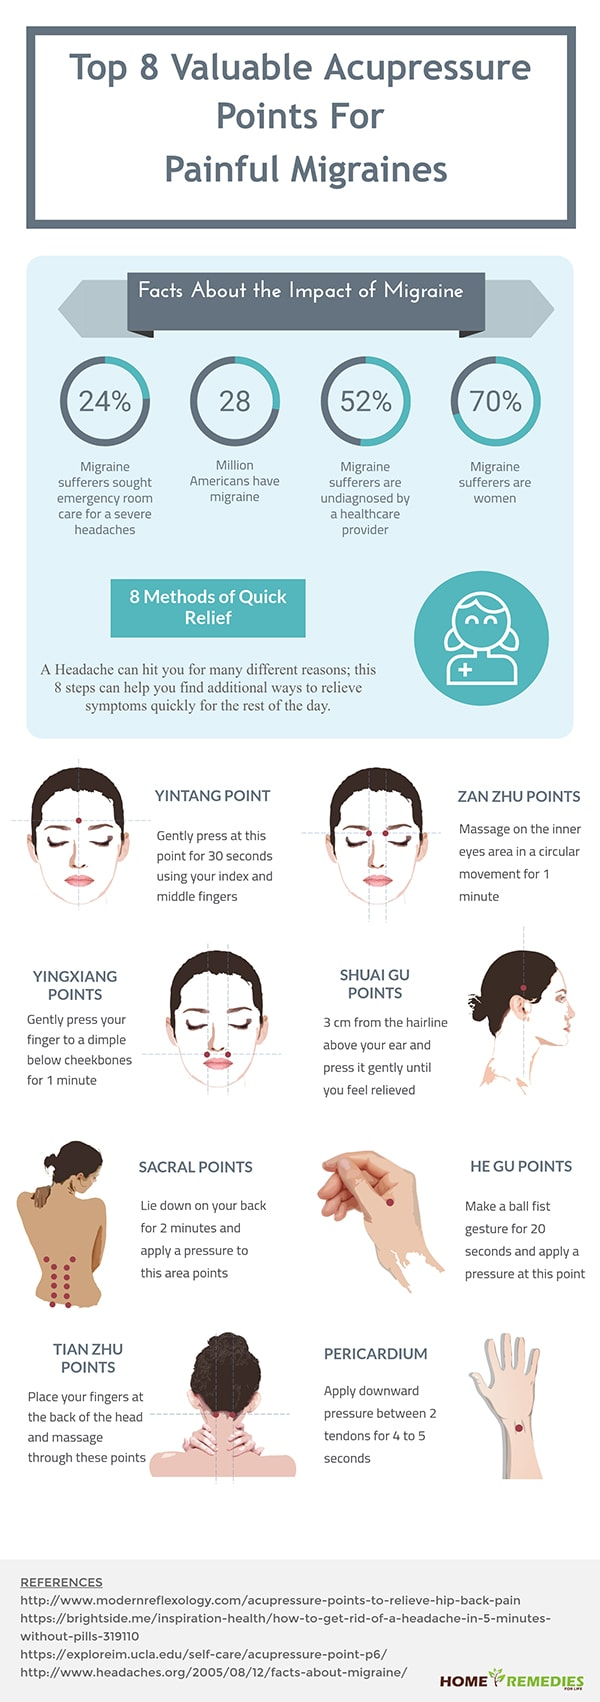 Top 8 Valuable Acupressure Points For Painful Migraines - Infographic